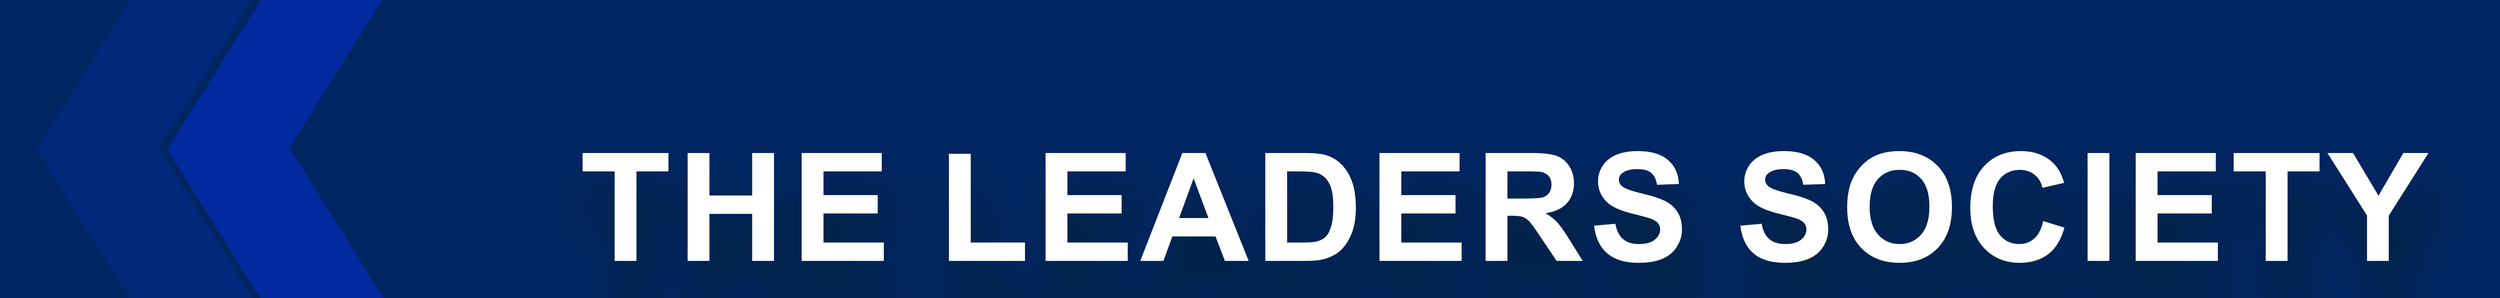 The Leaders Society page banner